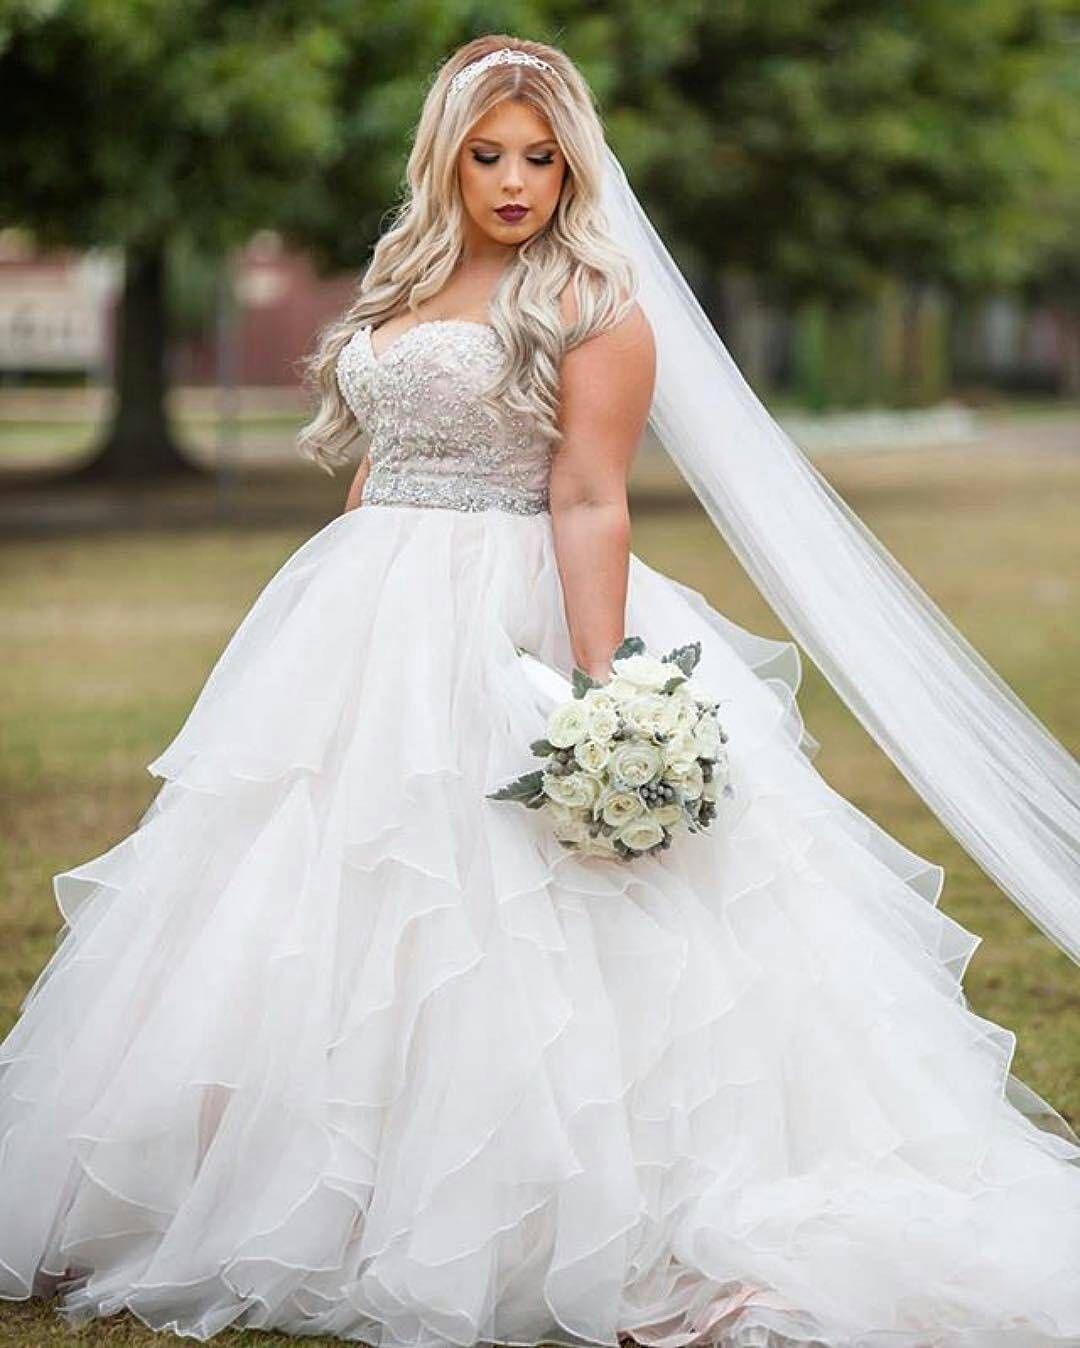 Strapless Plussizeweddingdresses With An Empire Waist Like This One Can Be Easily Recreated For Brides Any Design Changes